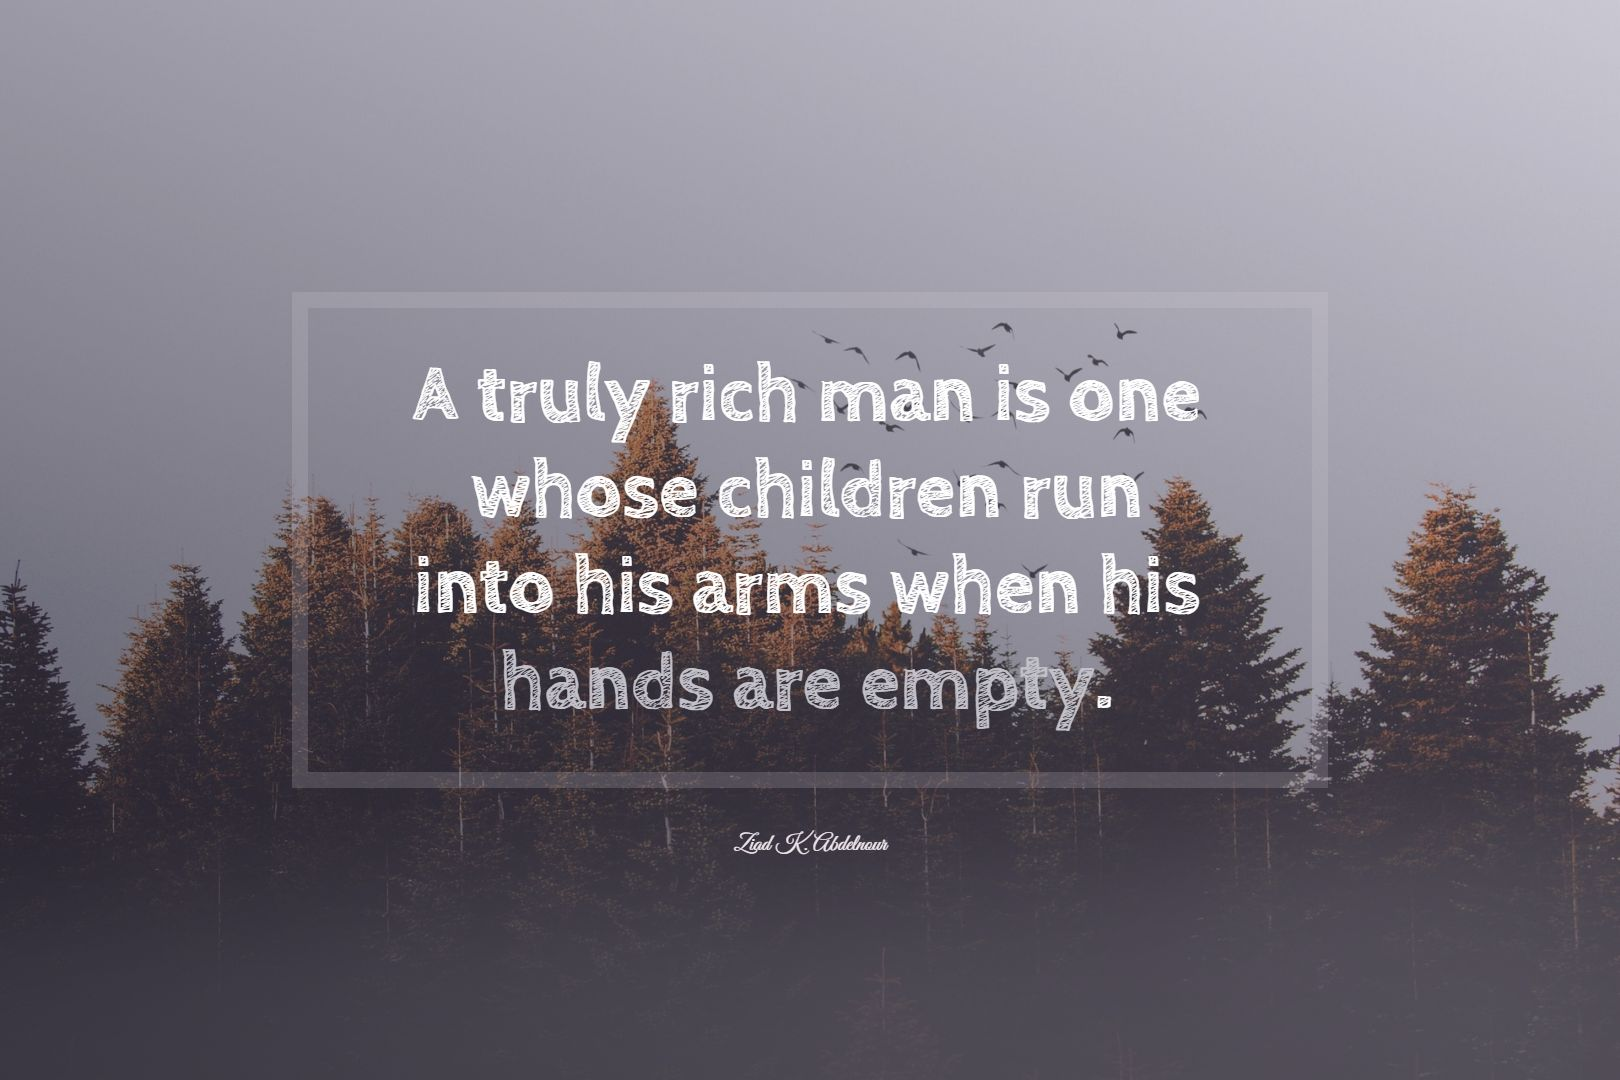 Quotes image of A truly rich man is one whose children run into his arms when his hands are empty.